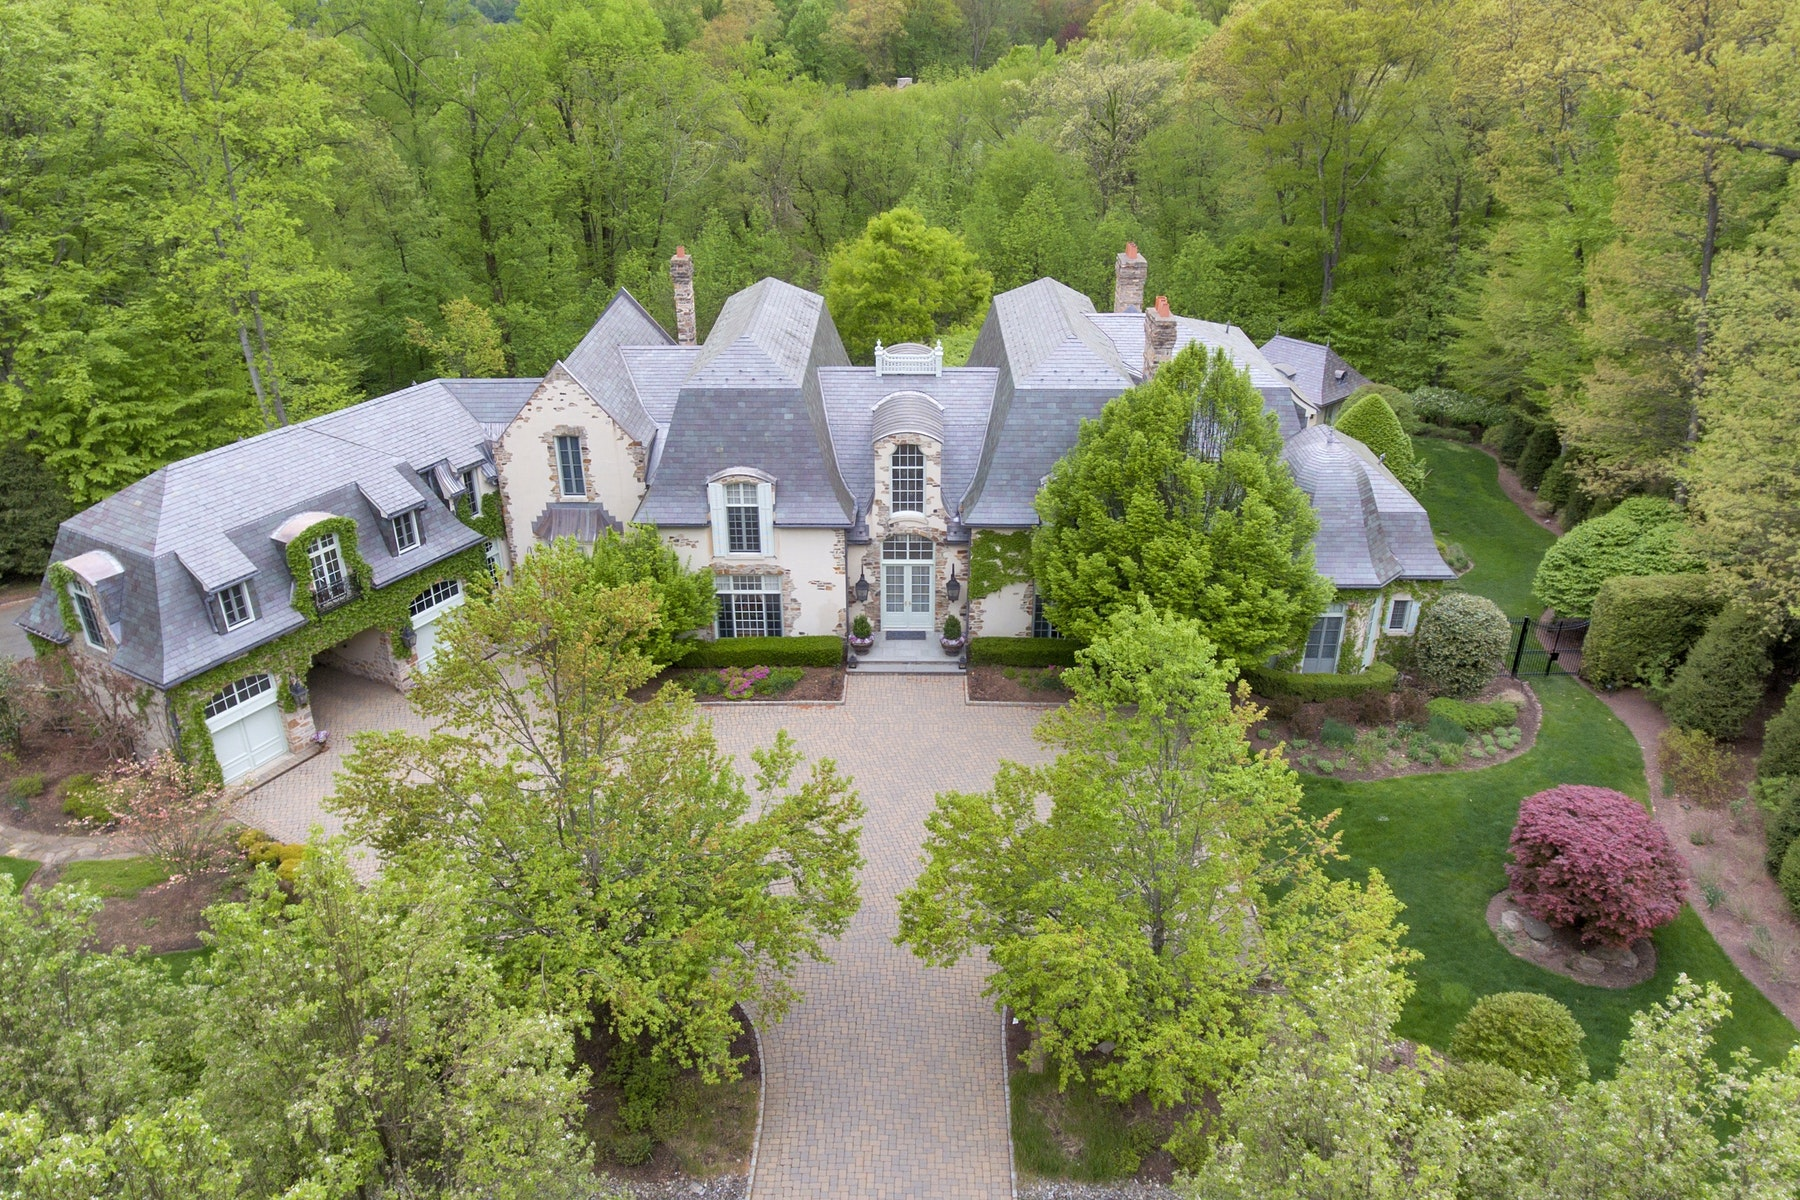 Single Family Homes for Sale at Country French Chateau 59 Fox Hedge Rd Saddle River, New Jersey 07458 United States